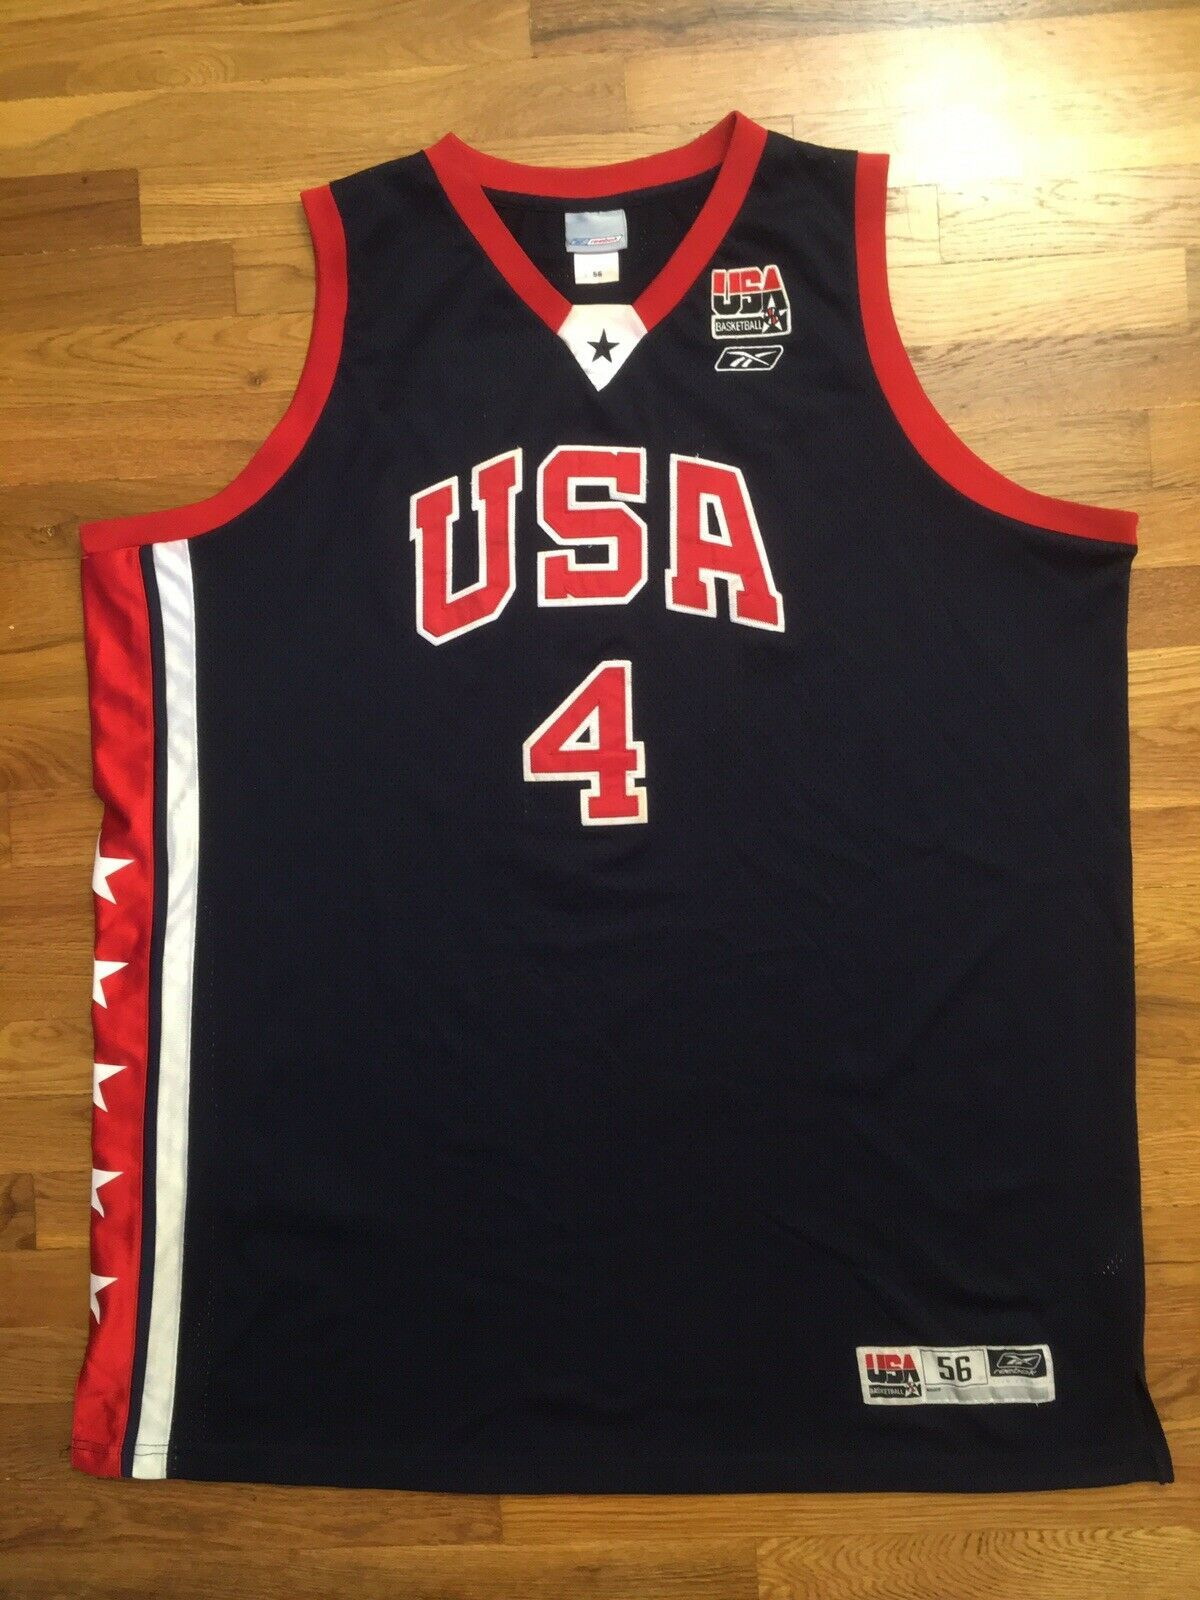 Primary image for Authentic Reebok 2003 Team USA Olympic Allen Iverson Road Away Jersey 56